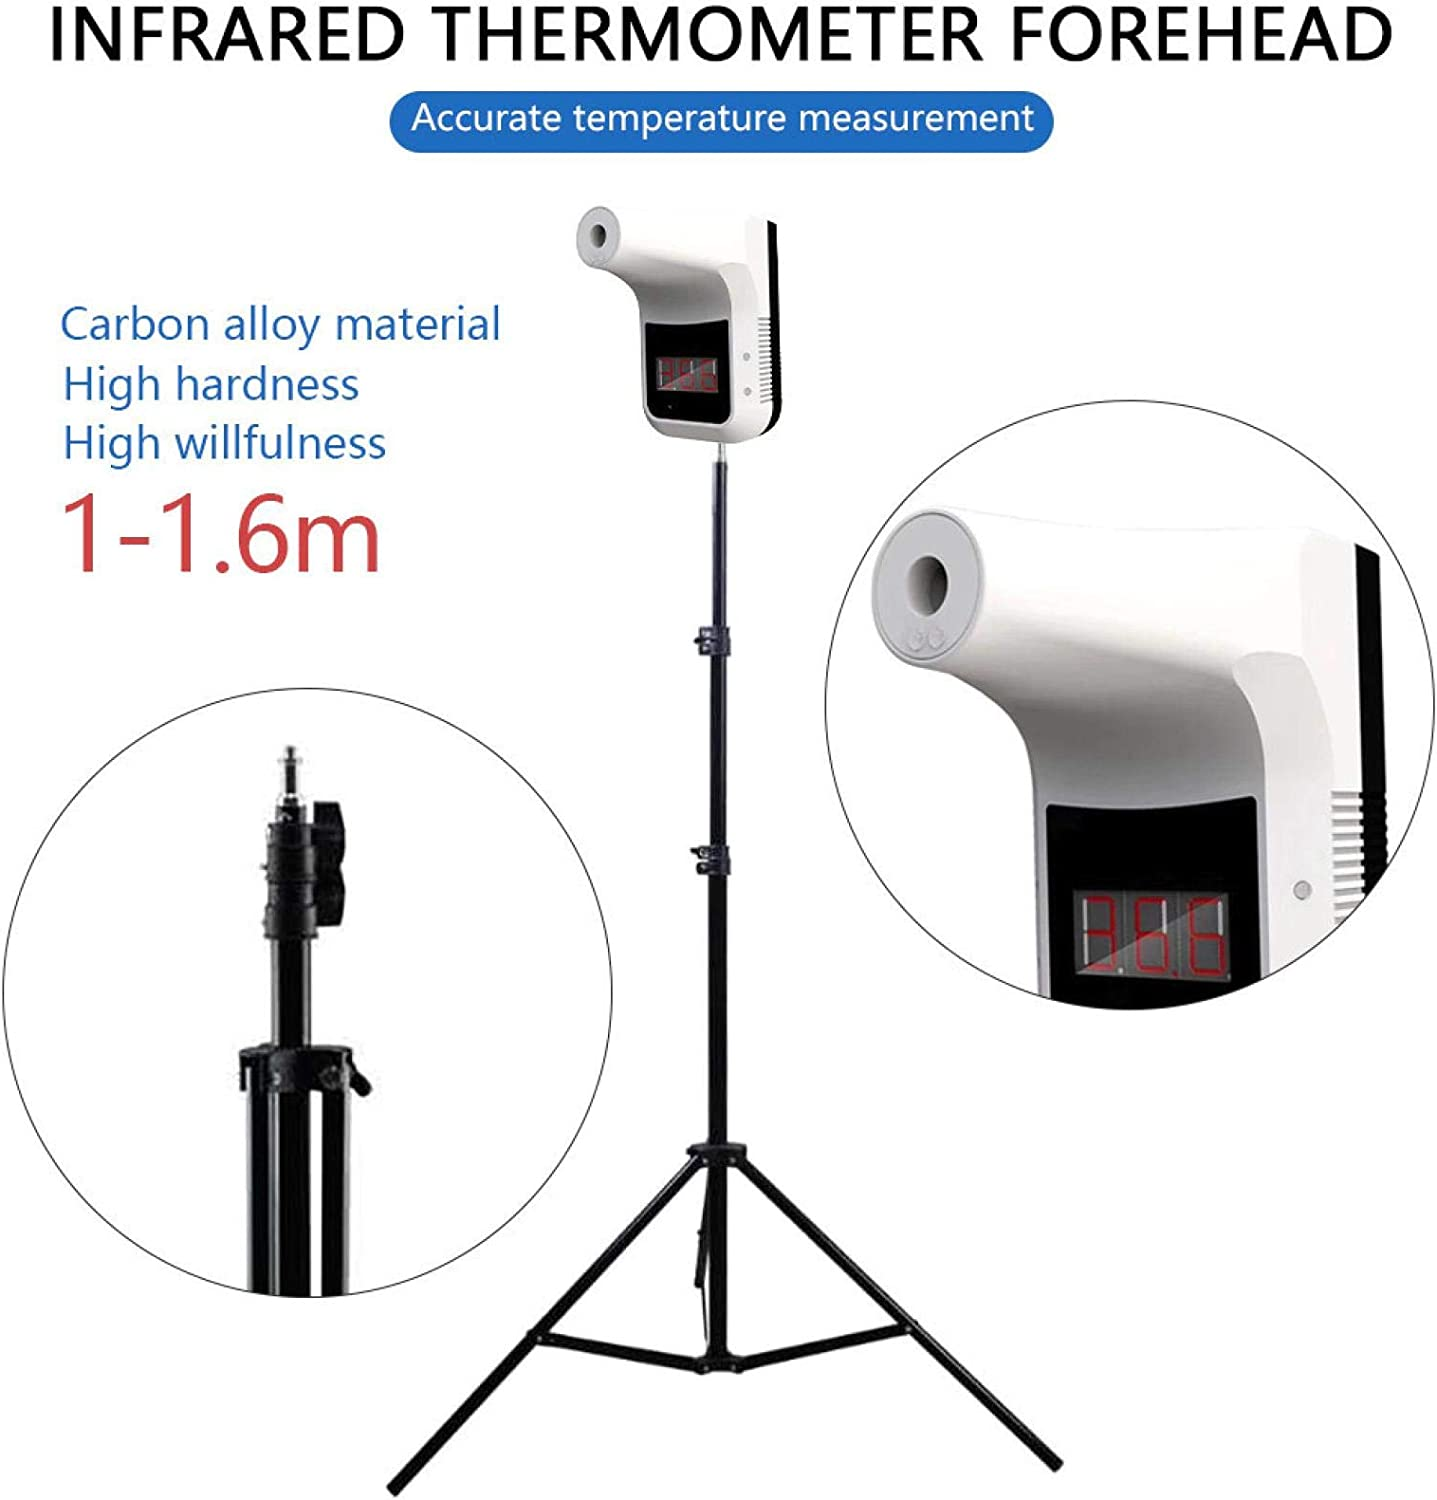 CMrtew Non-Contact Infrared Temperature Measurement with Stand Holder and Battery Digital K3 Forehead Thermometer with Fever Alarm for Office Home Supermarket School Community Thermometer + Bracket